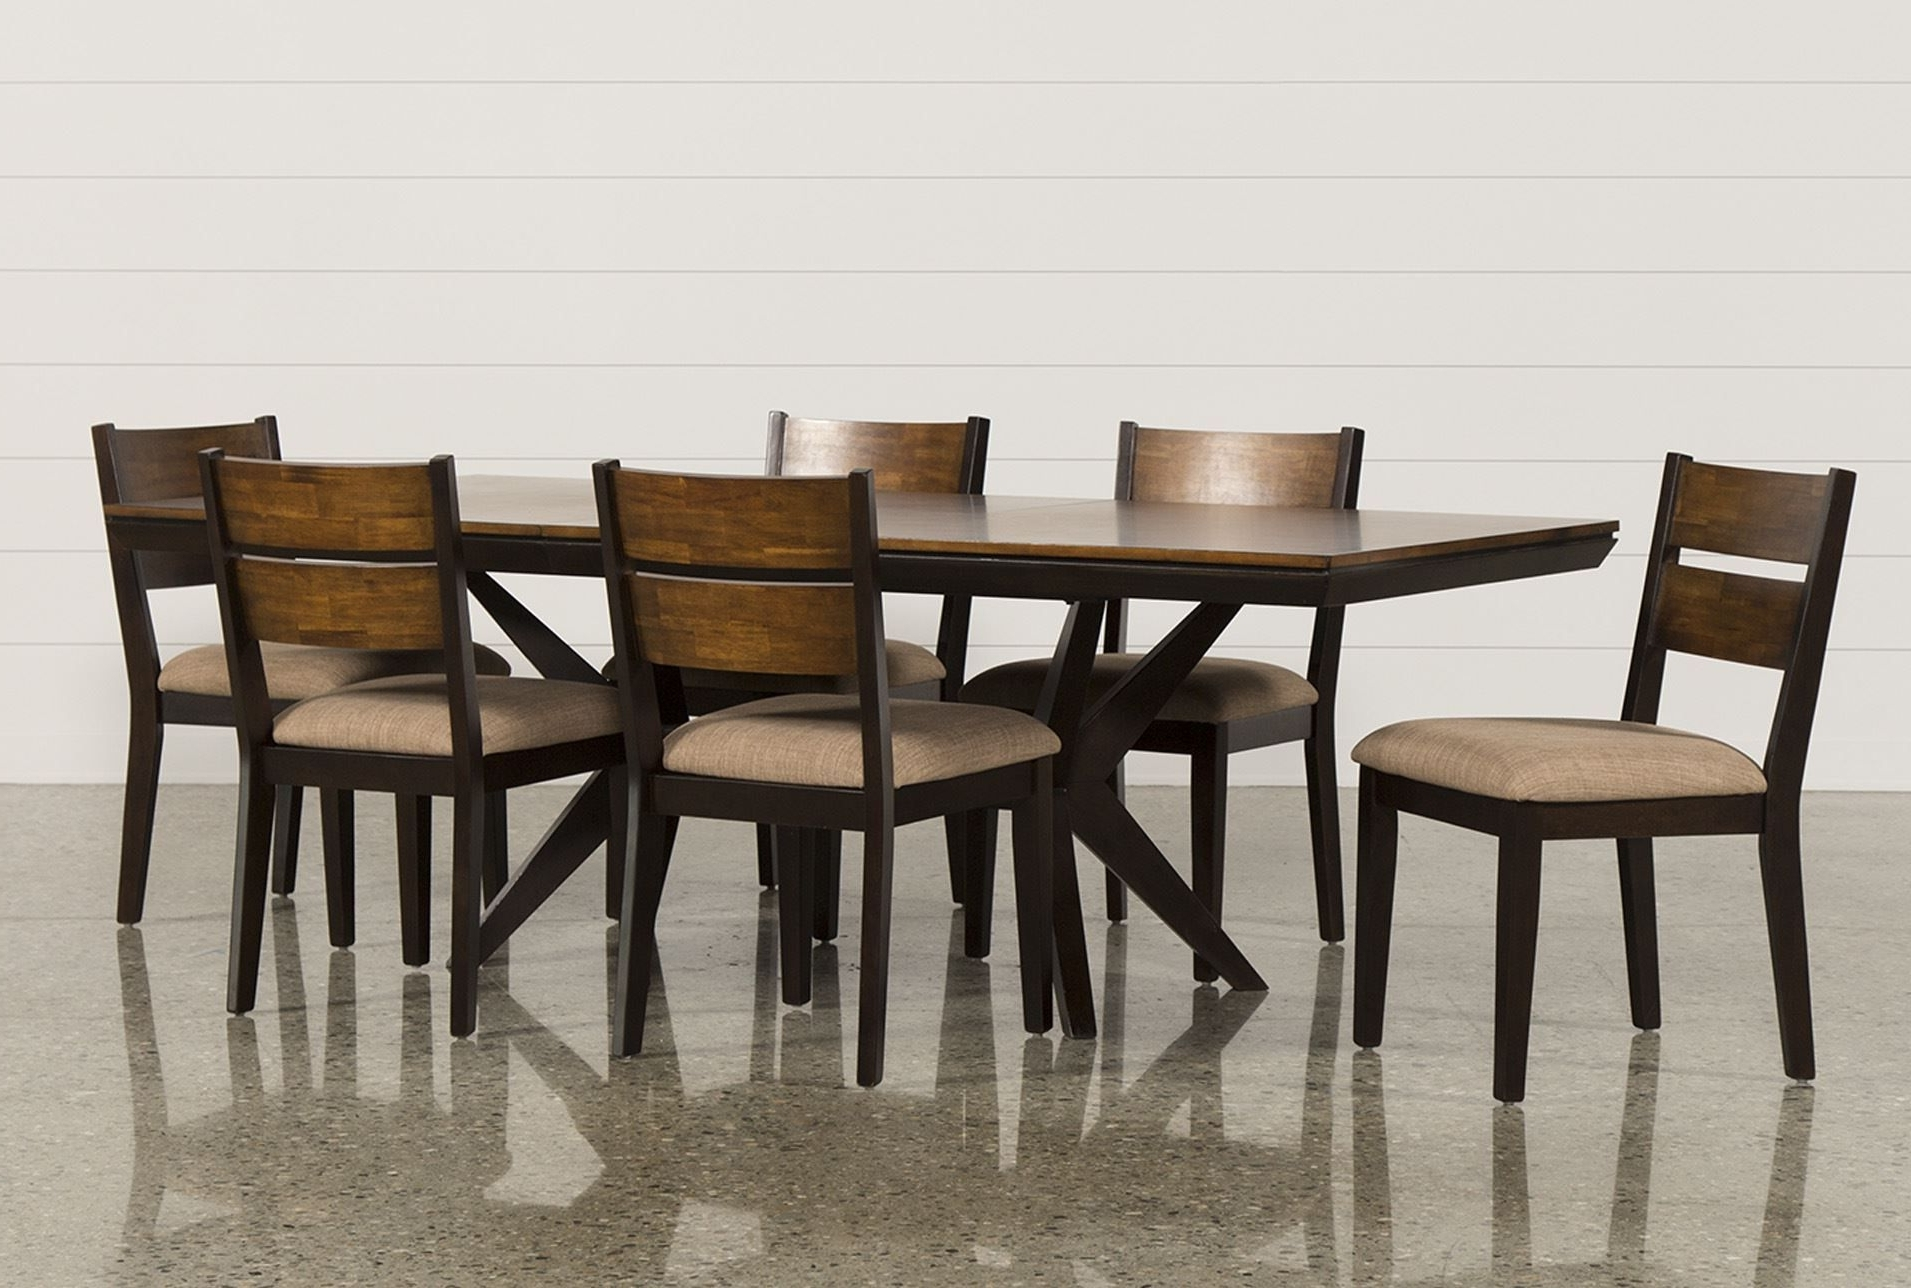 Spencer 7 Piece Rectangle Dining Set W/wood Chairs, Brown (View 22 of 25)